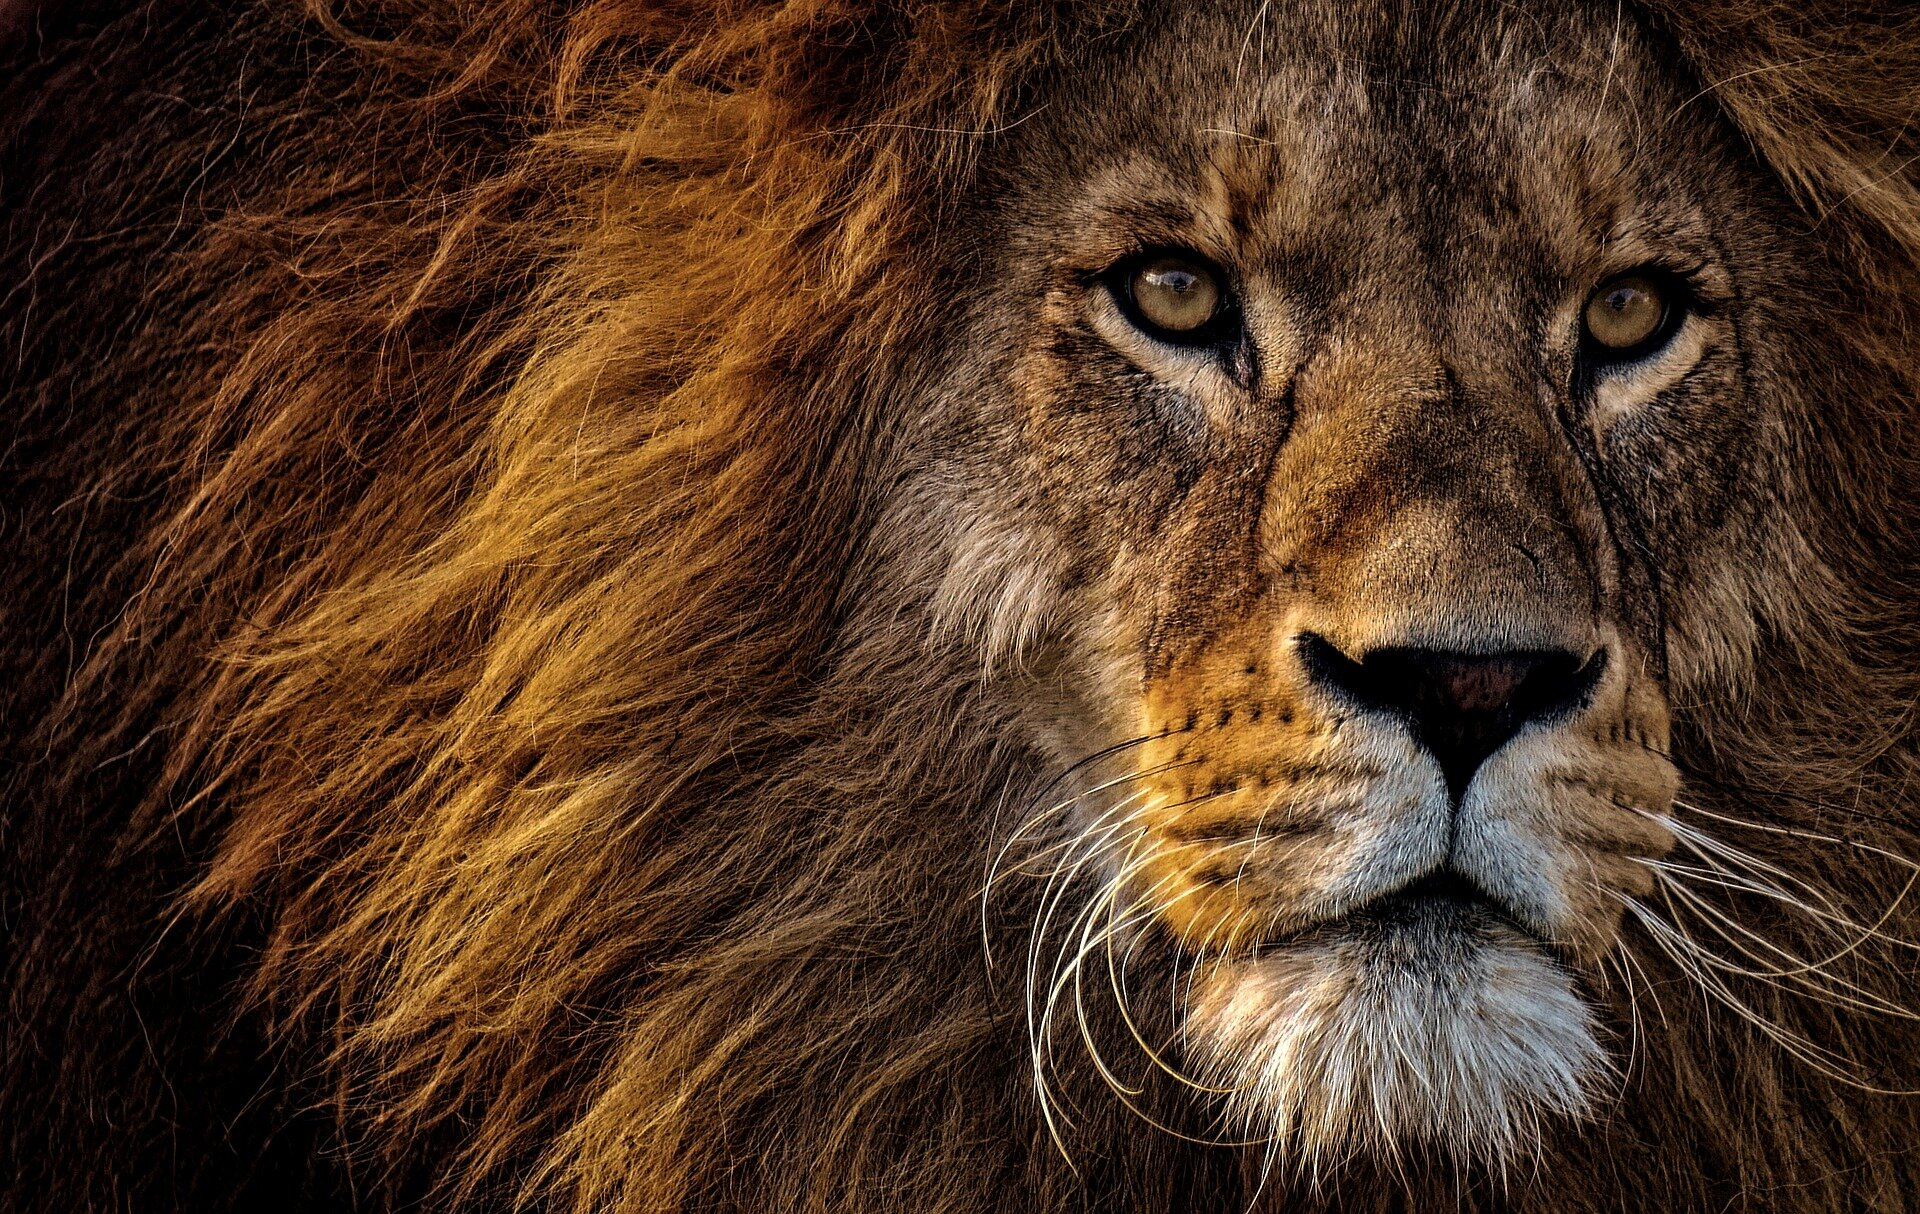 Lion genetics study uncovers major consequences of habitat fragmentation